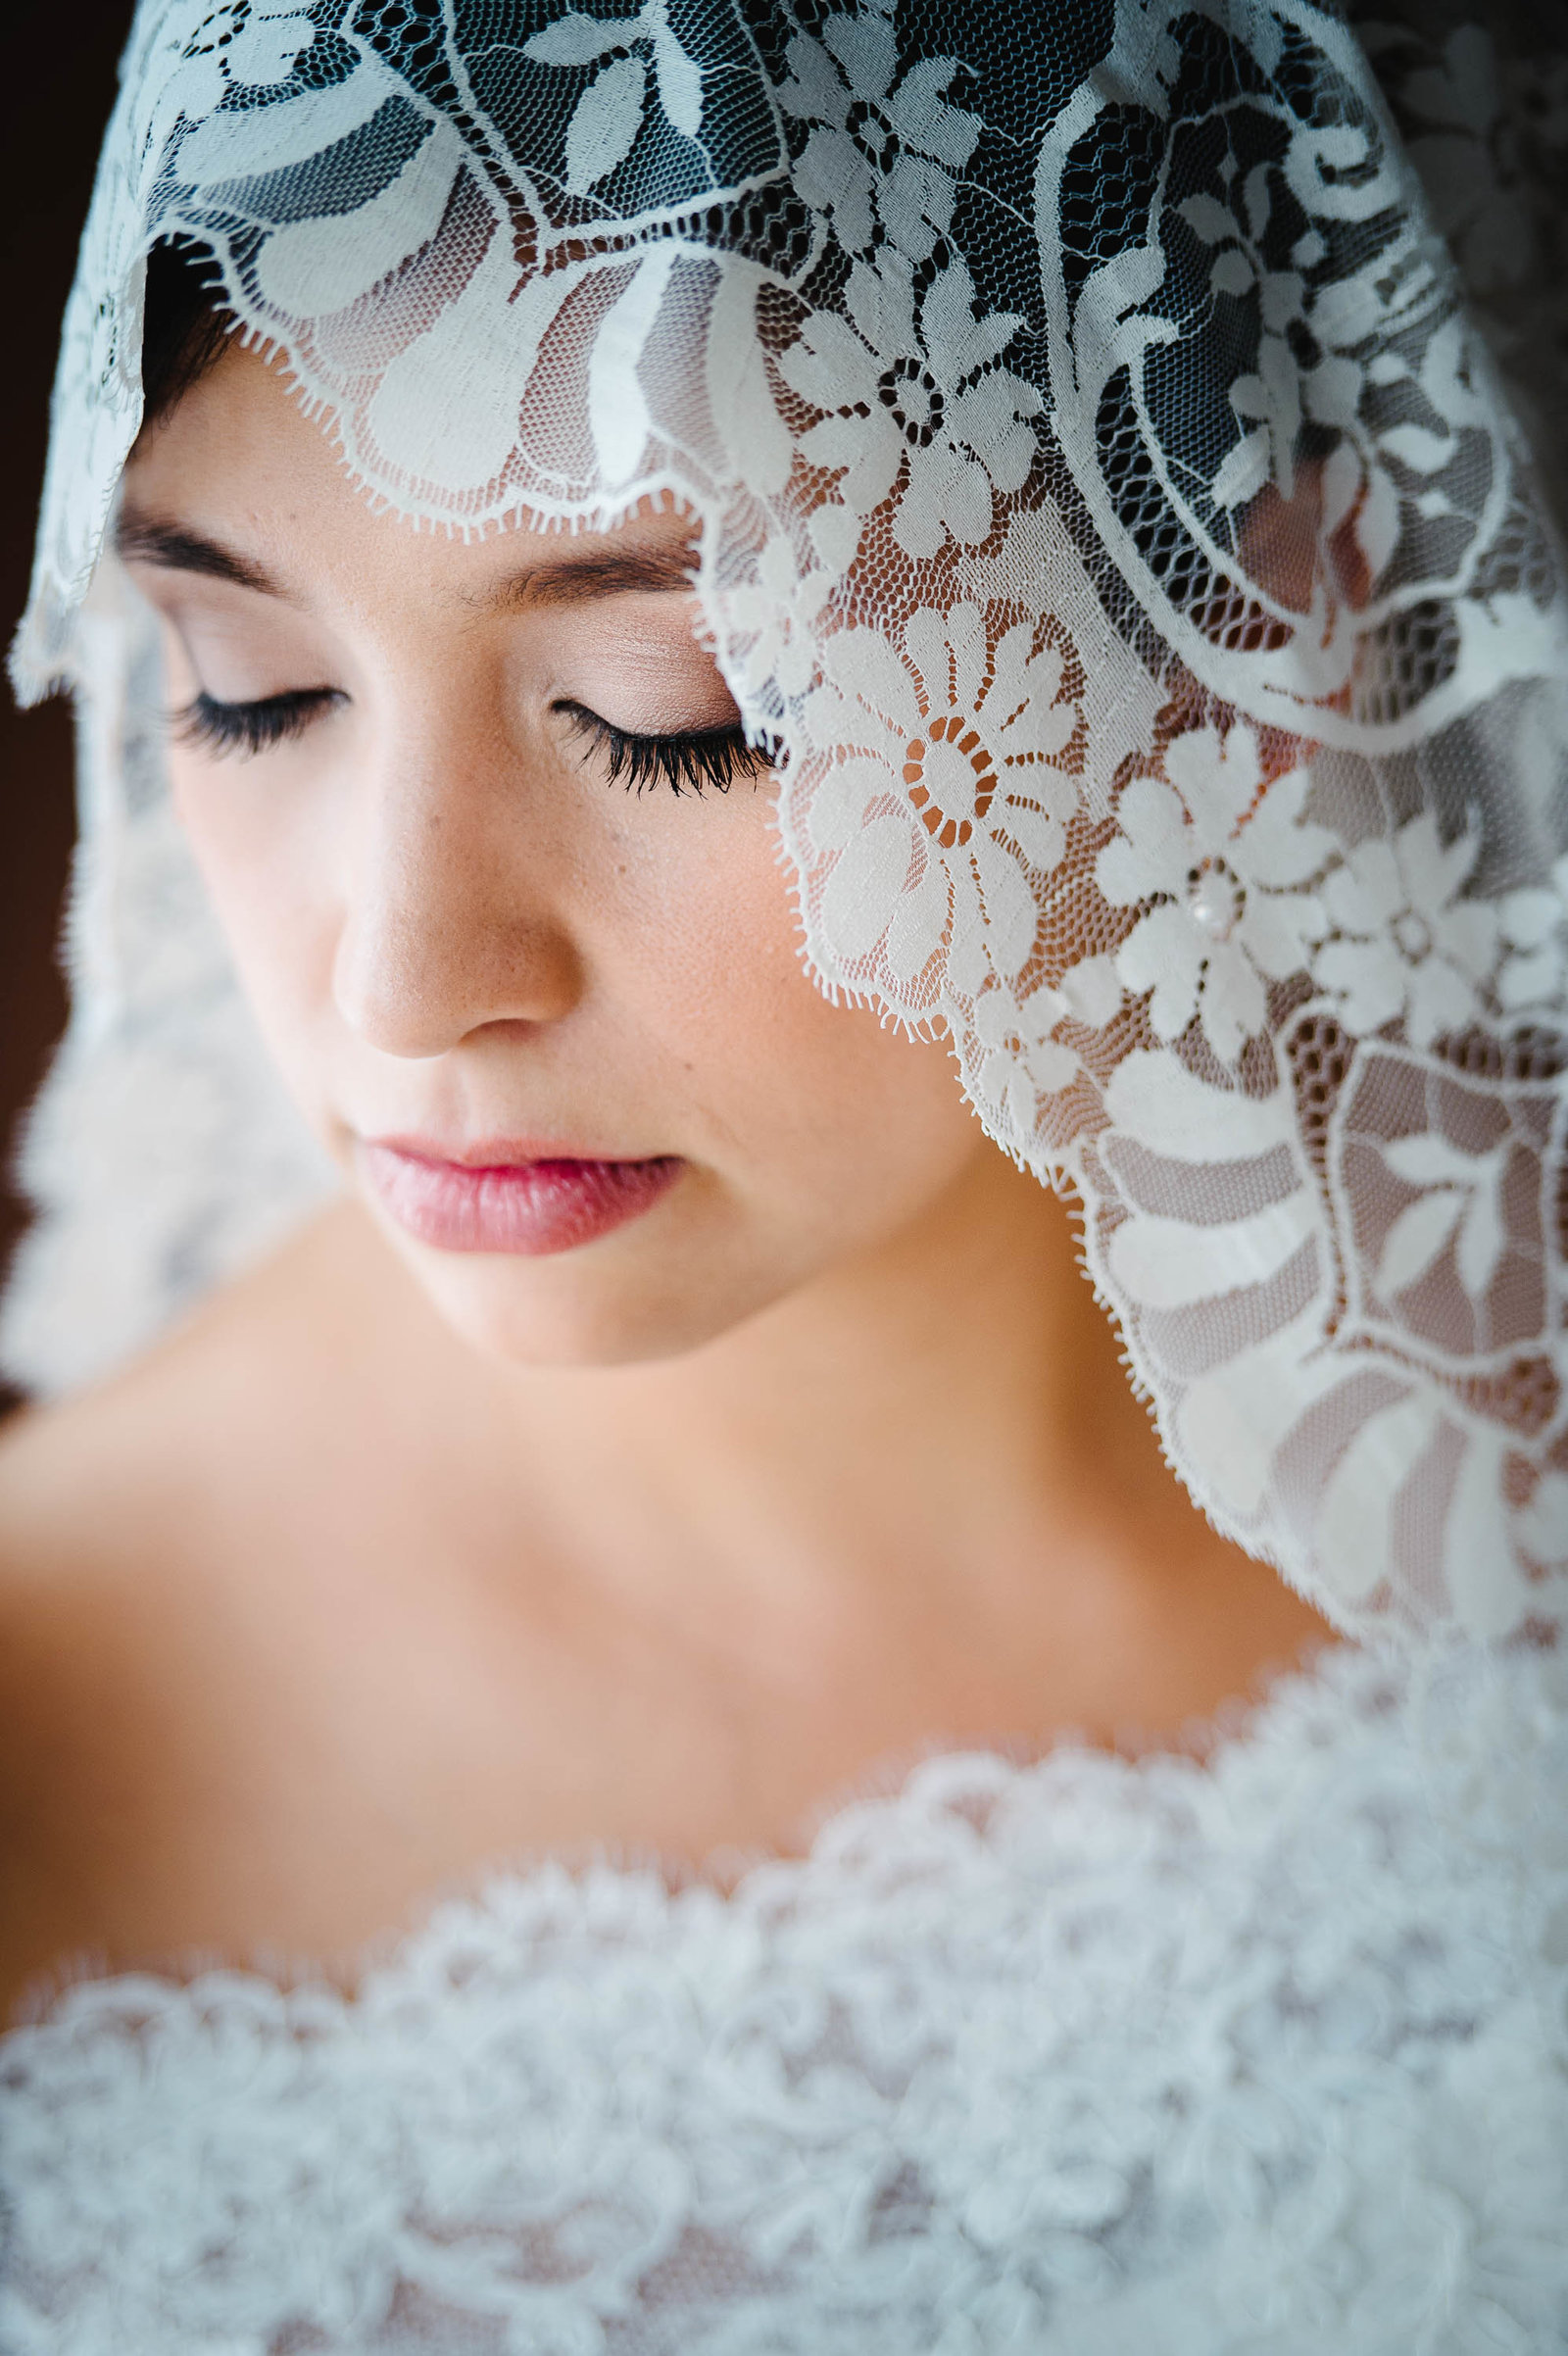 271-El-paso-wedding-photographer-El Paso Wedding Photographer_B02